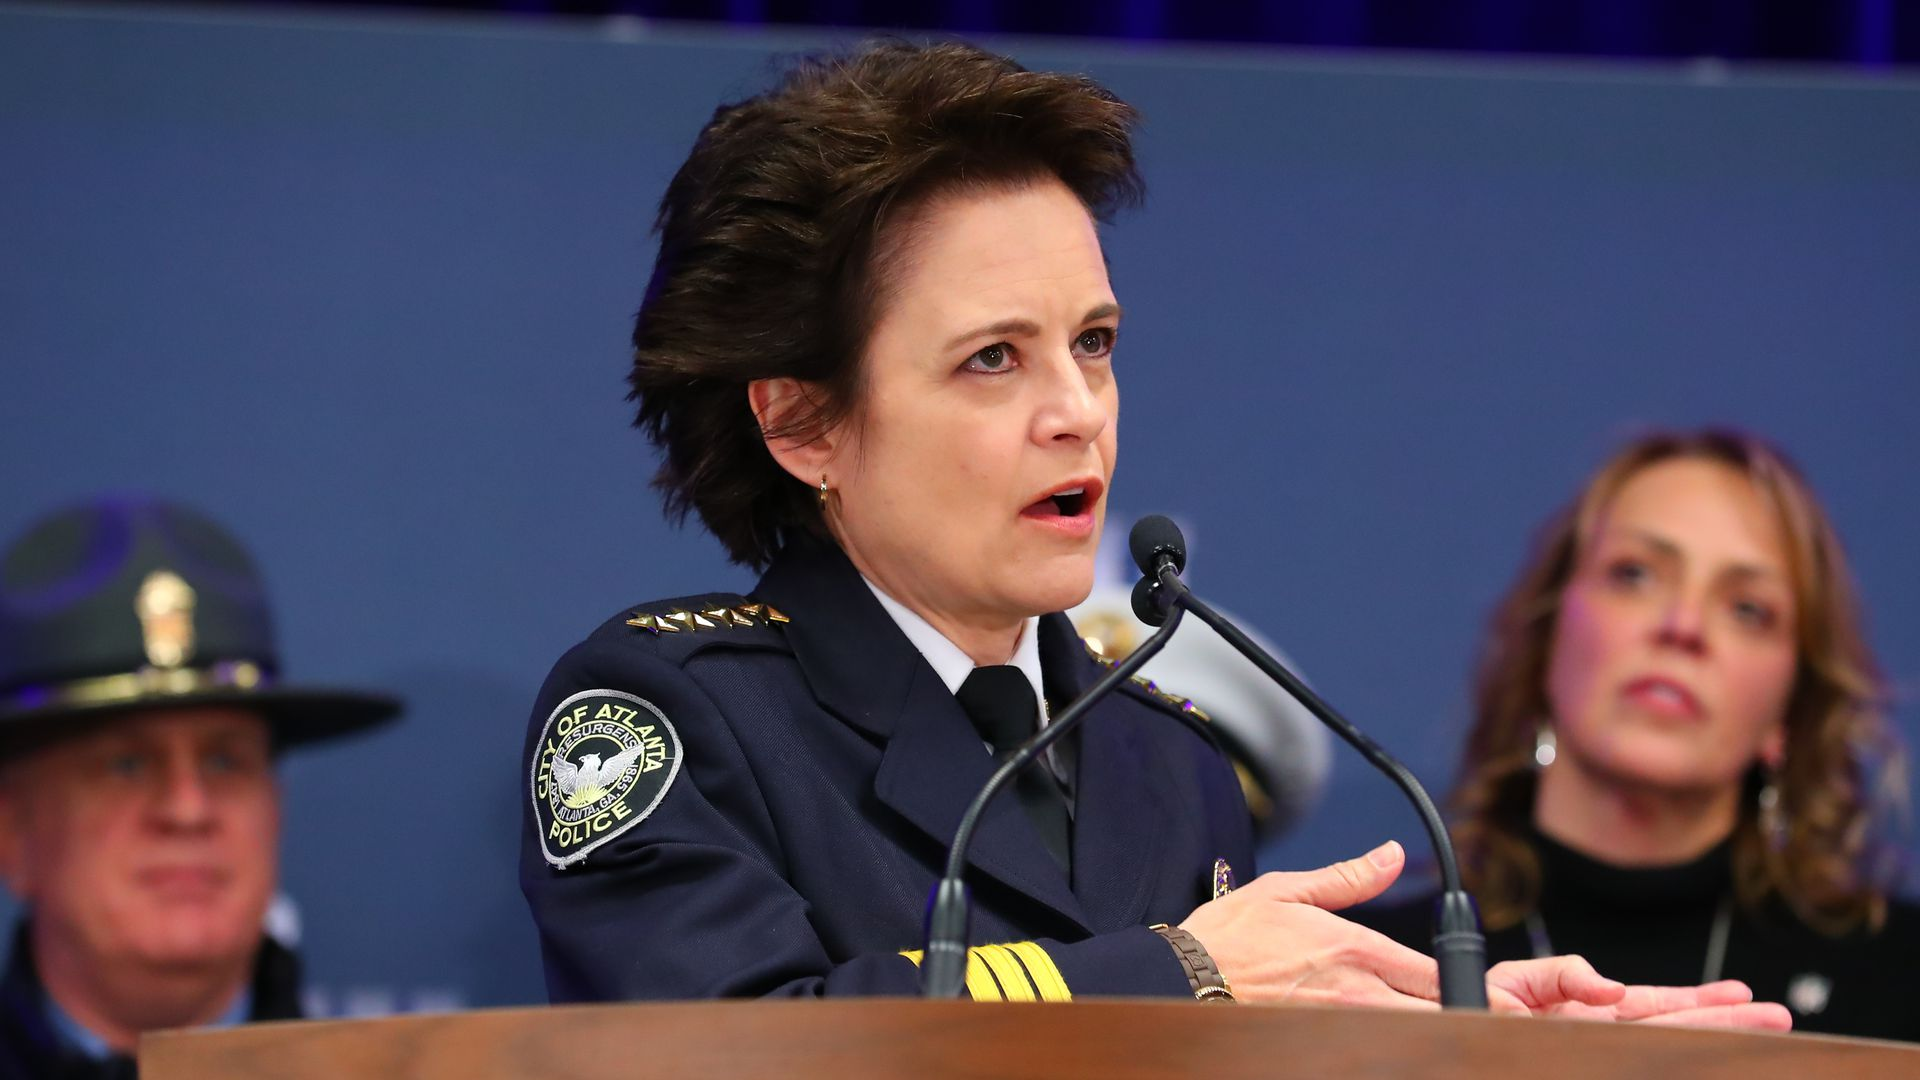 In this image, the Atlanta police chief speaks into a microphone from behind a podium.